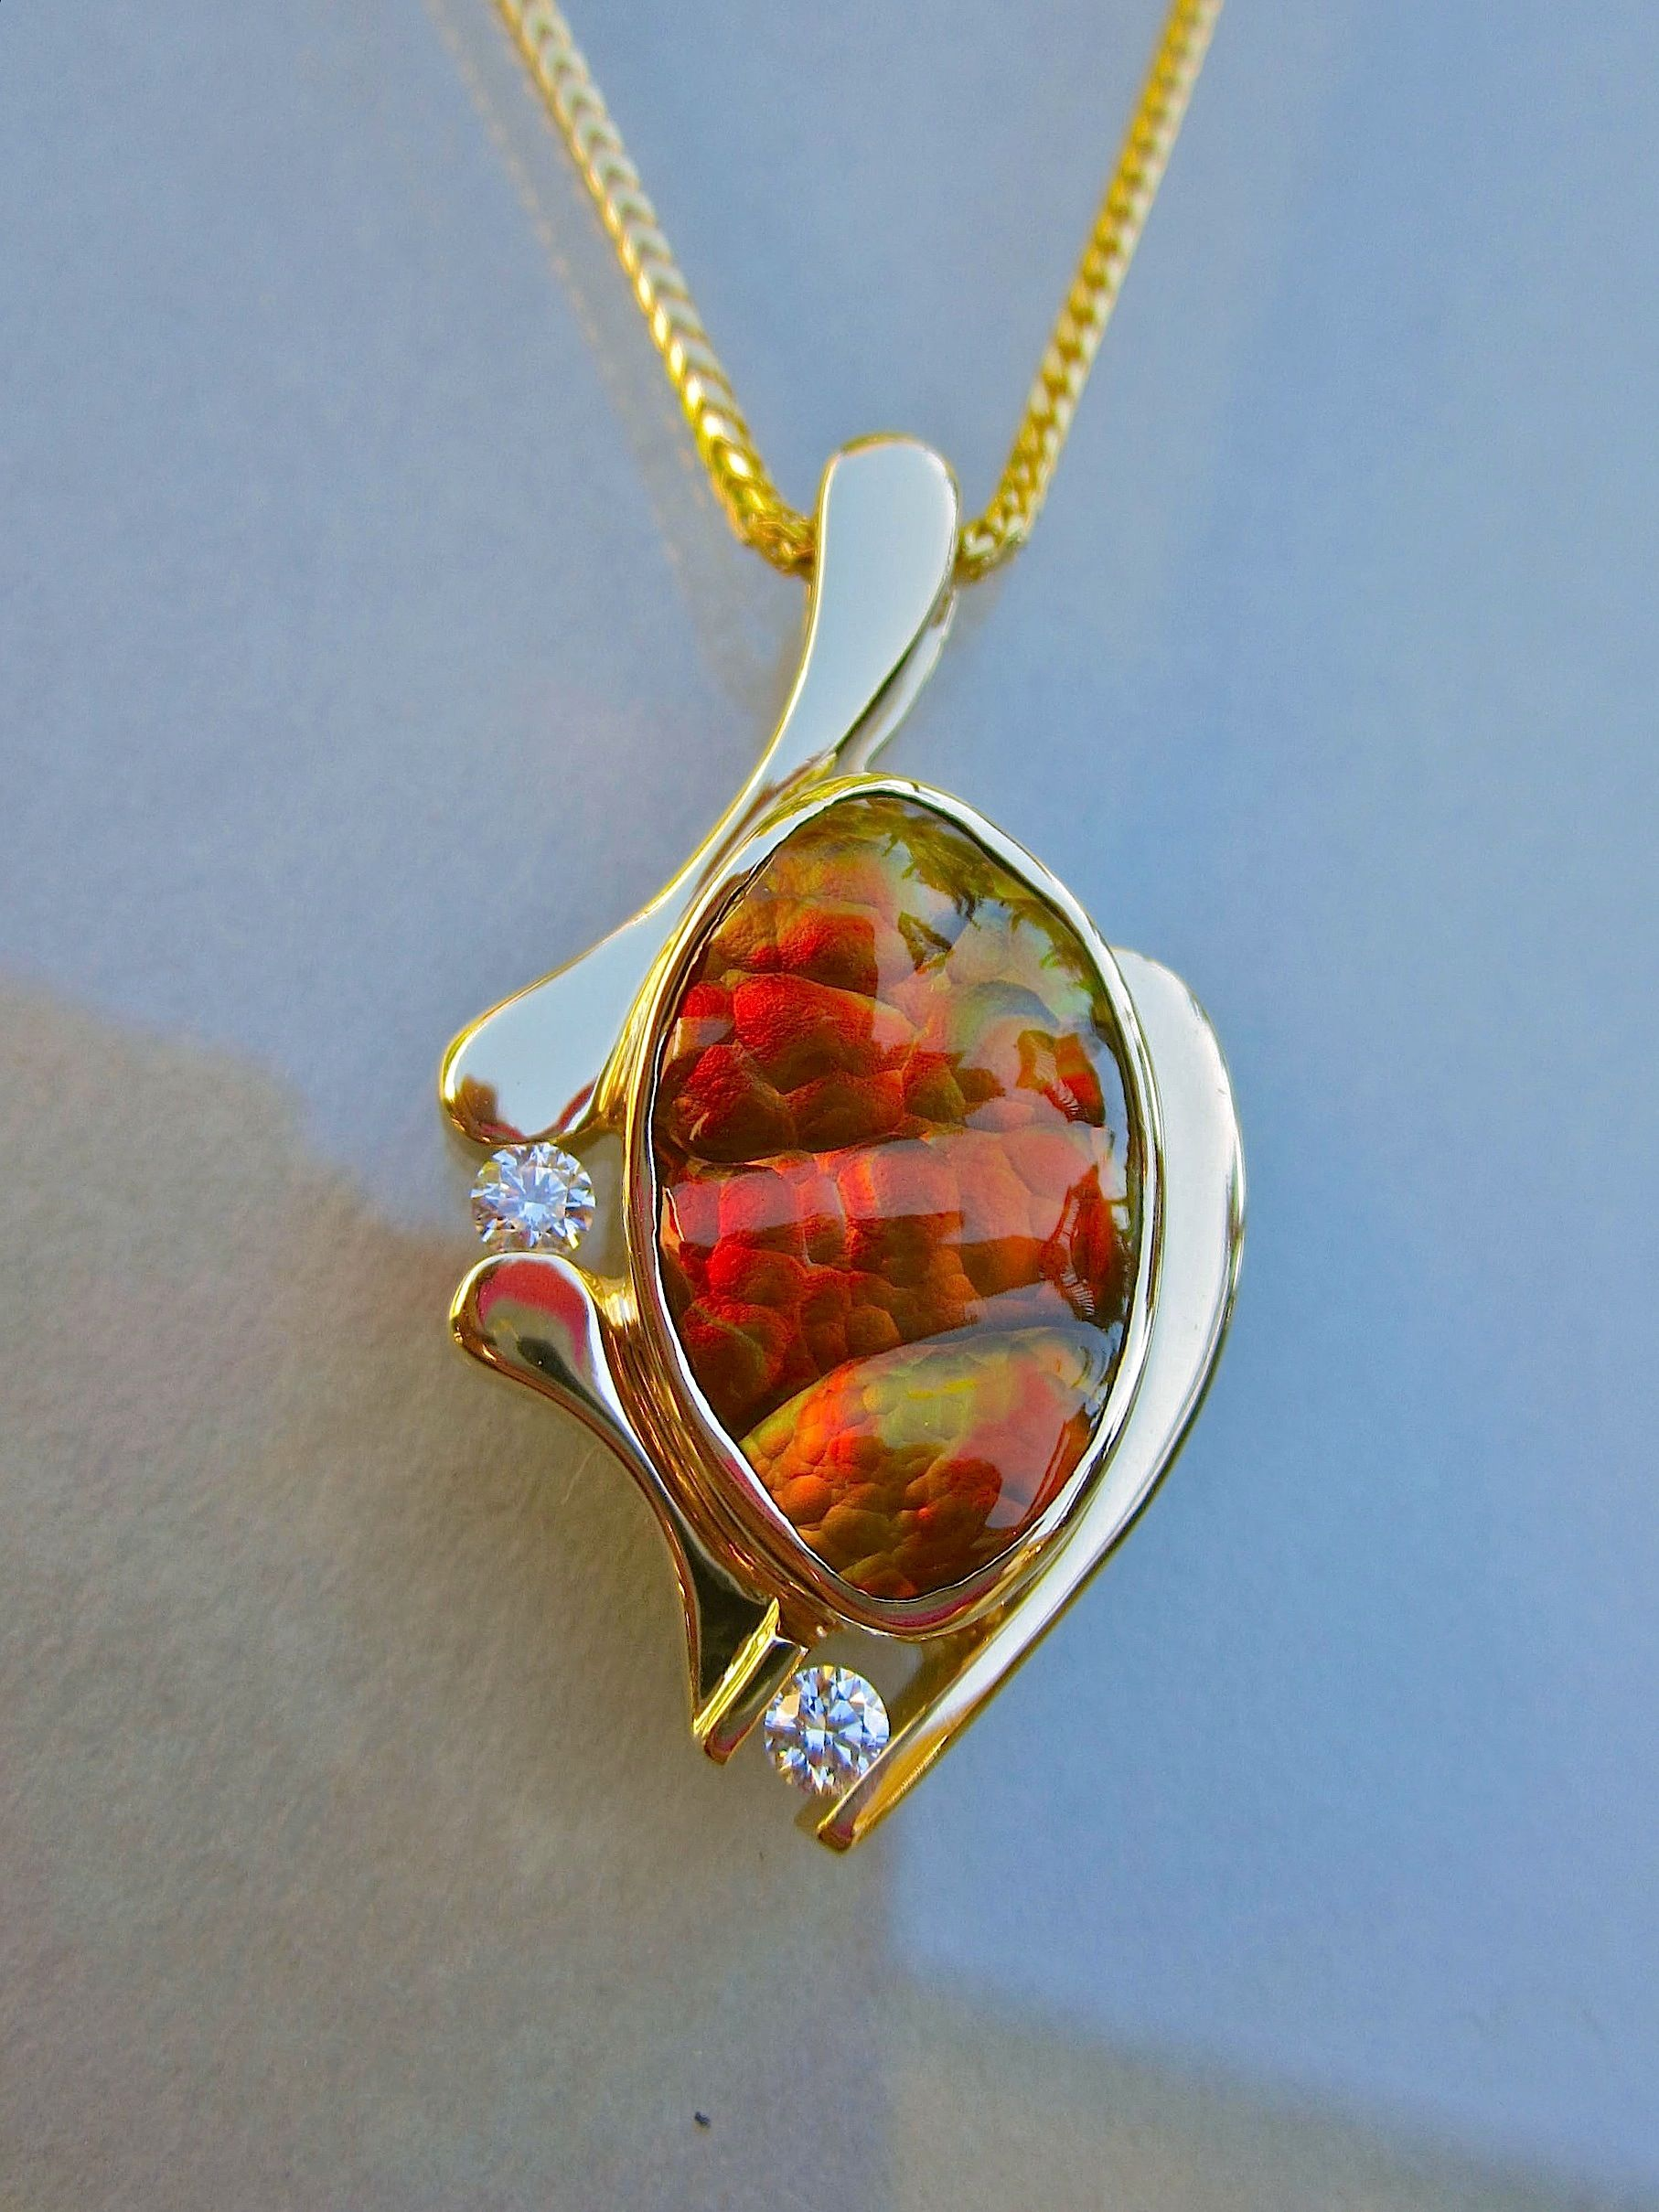 One of a kind fire agate and diamond pendant by Glenn Dizon Designs. Available.